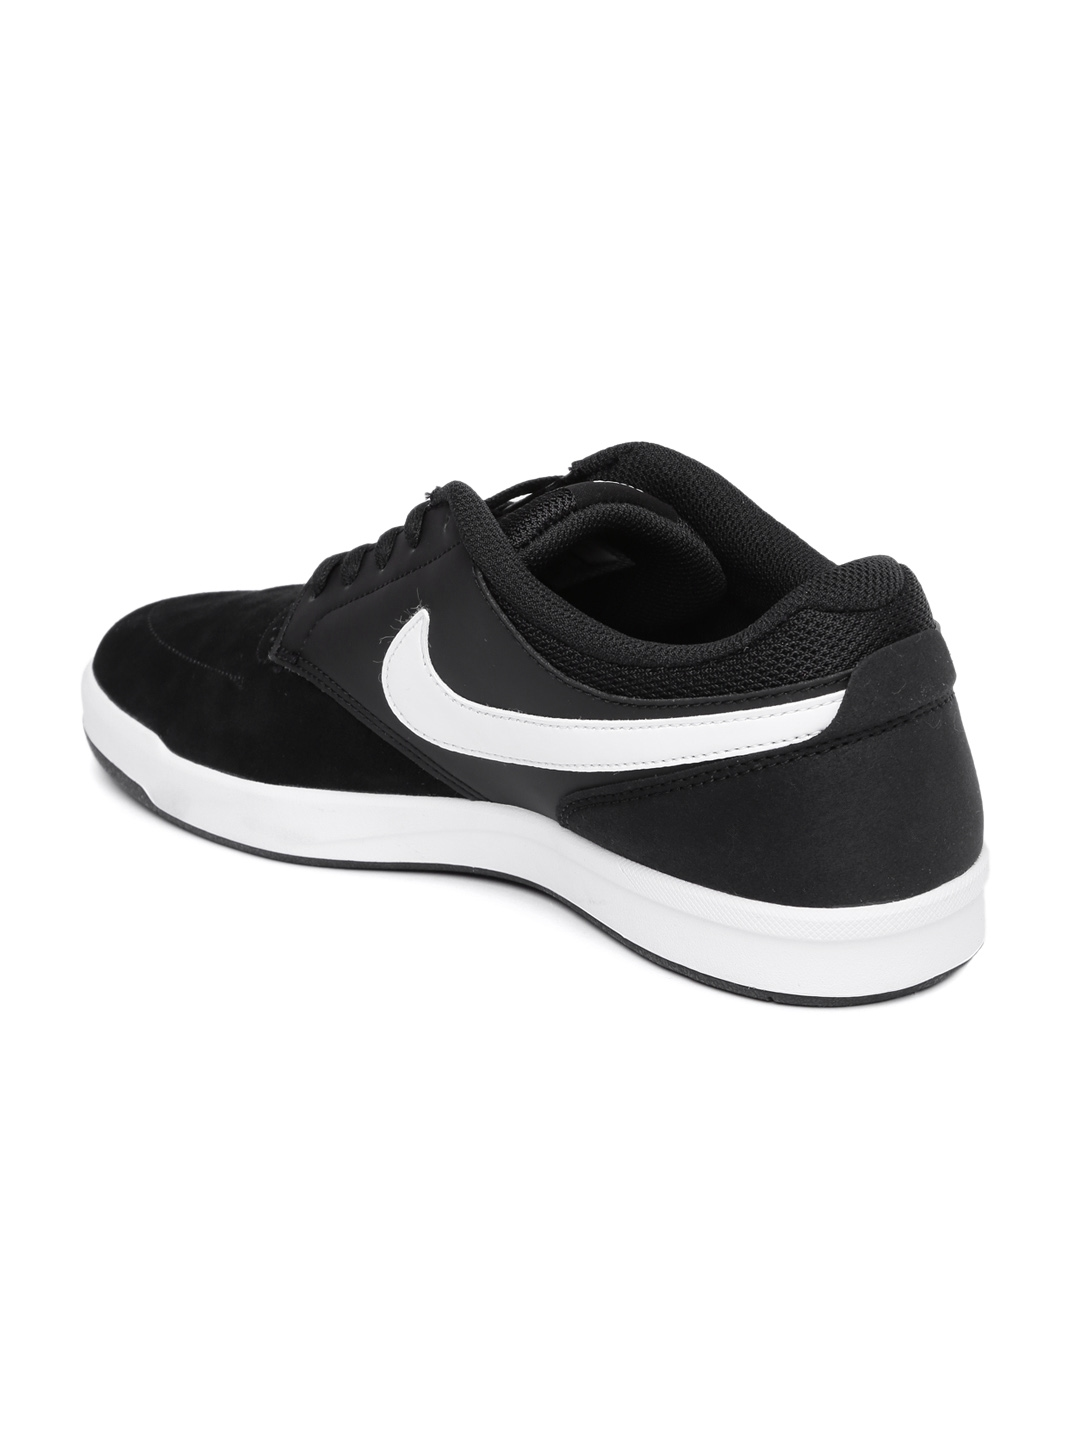 beadb75d0a9b Buy Nike Men Black SB FOKUS Suede Skateboarding Shoes - Casual Shoes ...